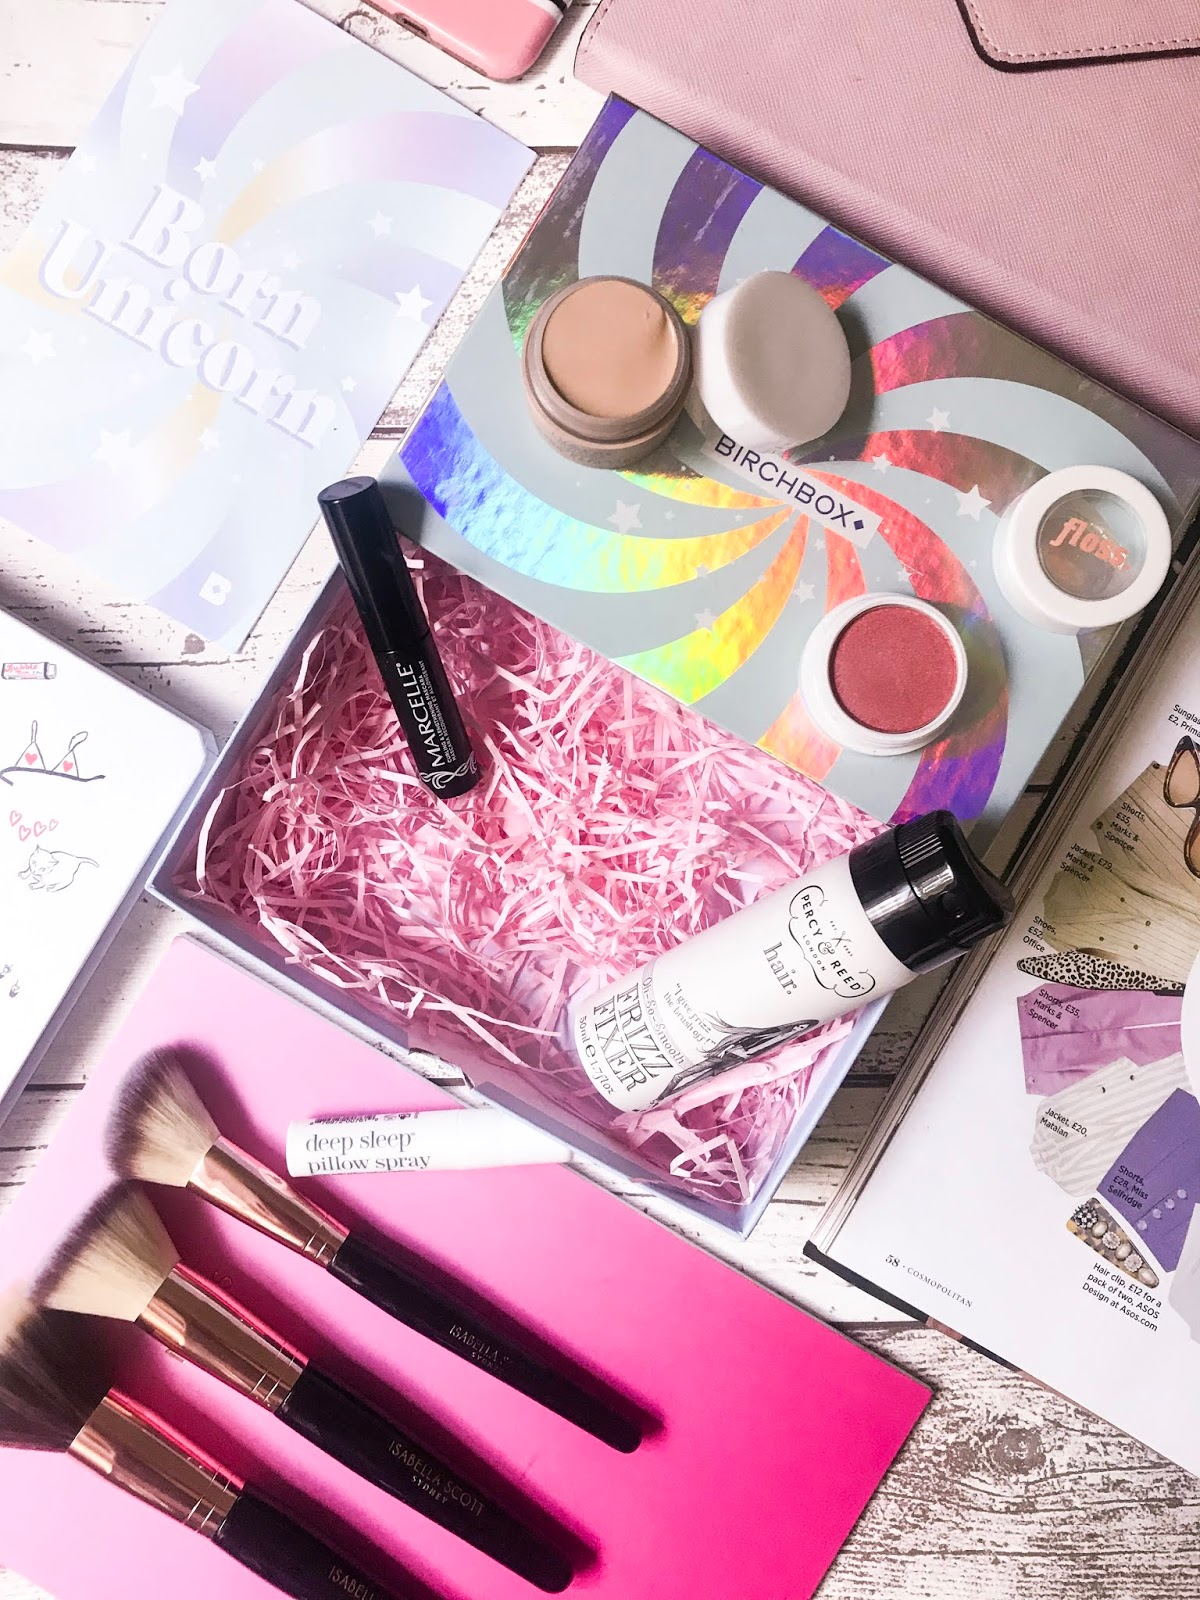 Birchbox flatlay with makeup and skincare products